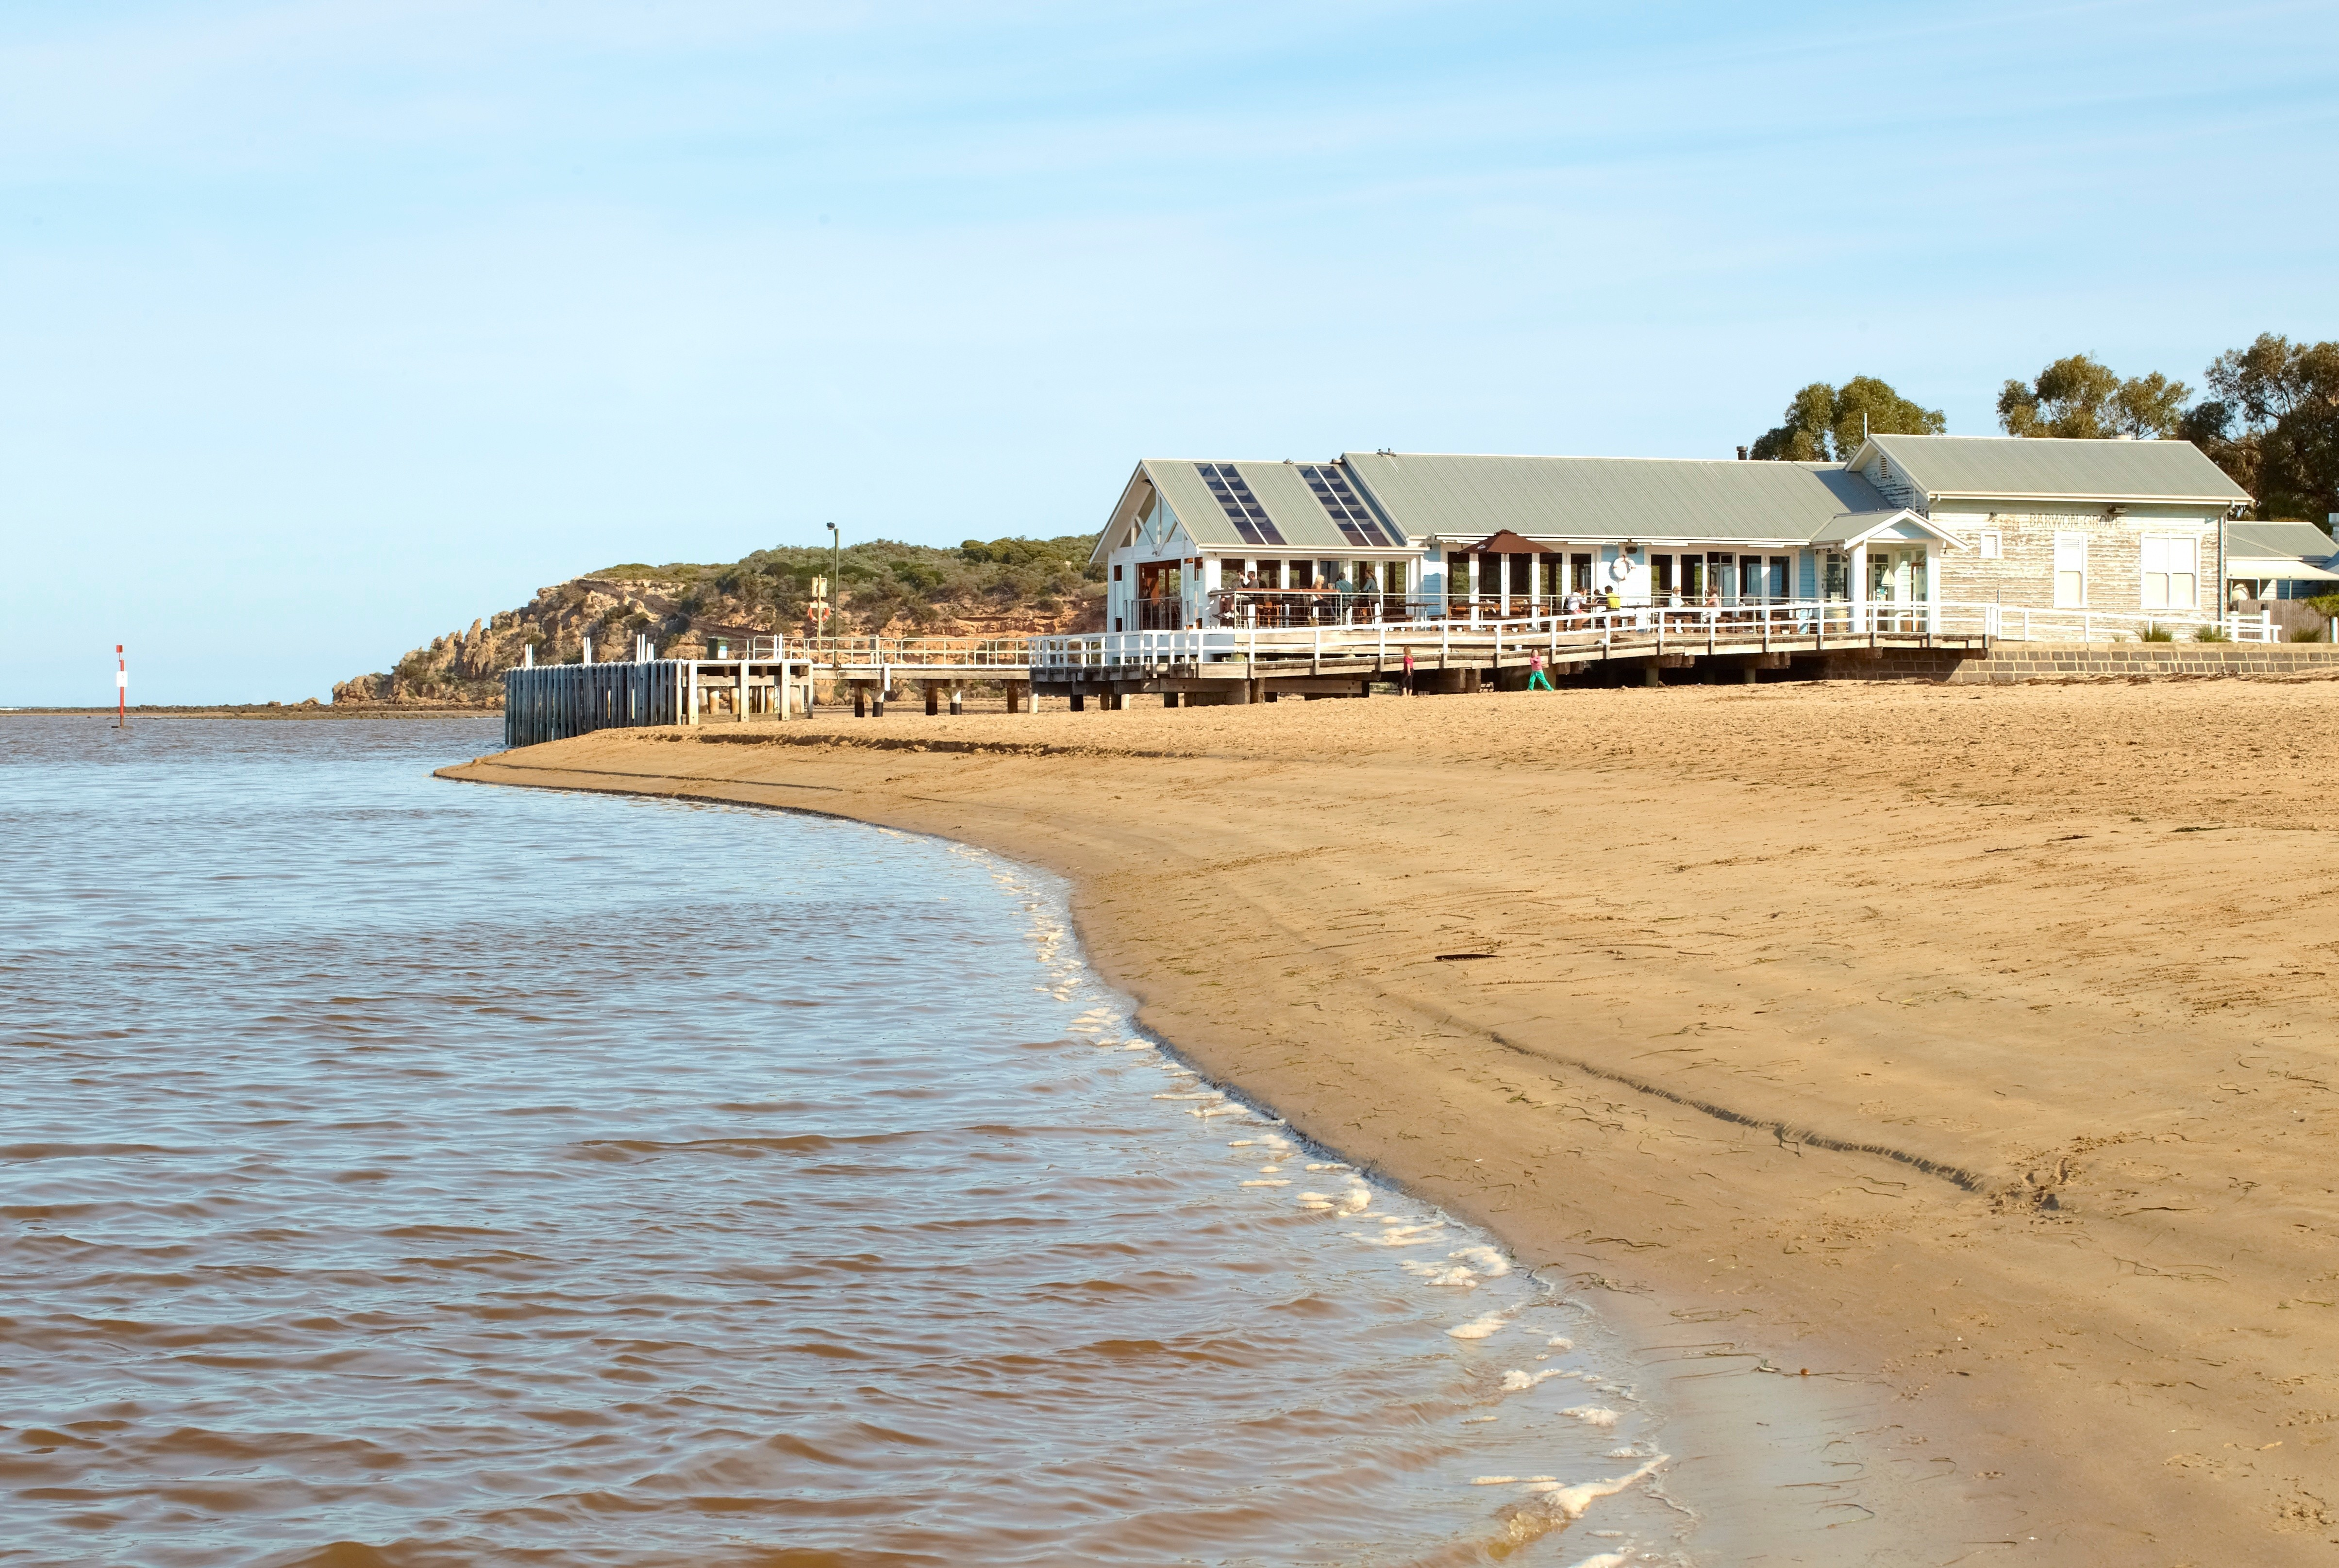 Seaside town on the Bellarine